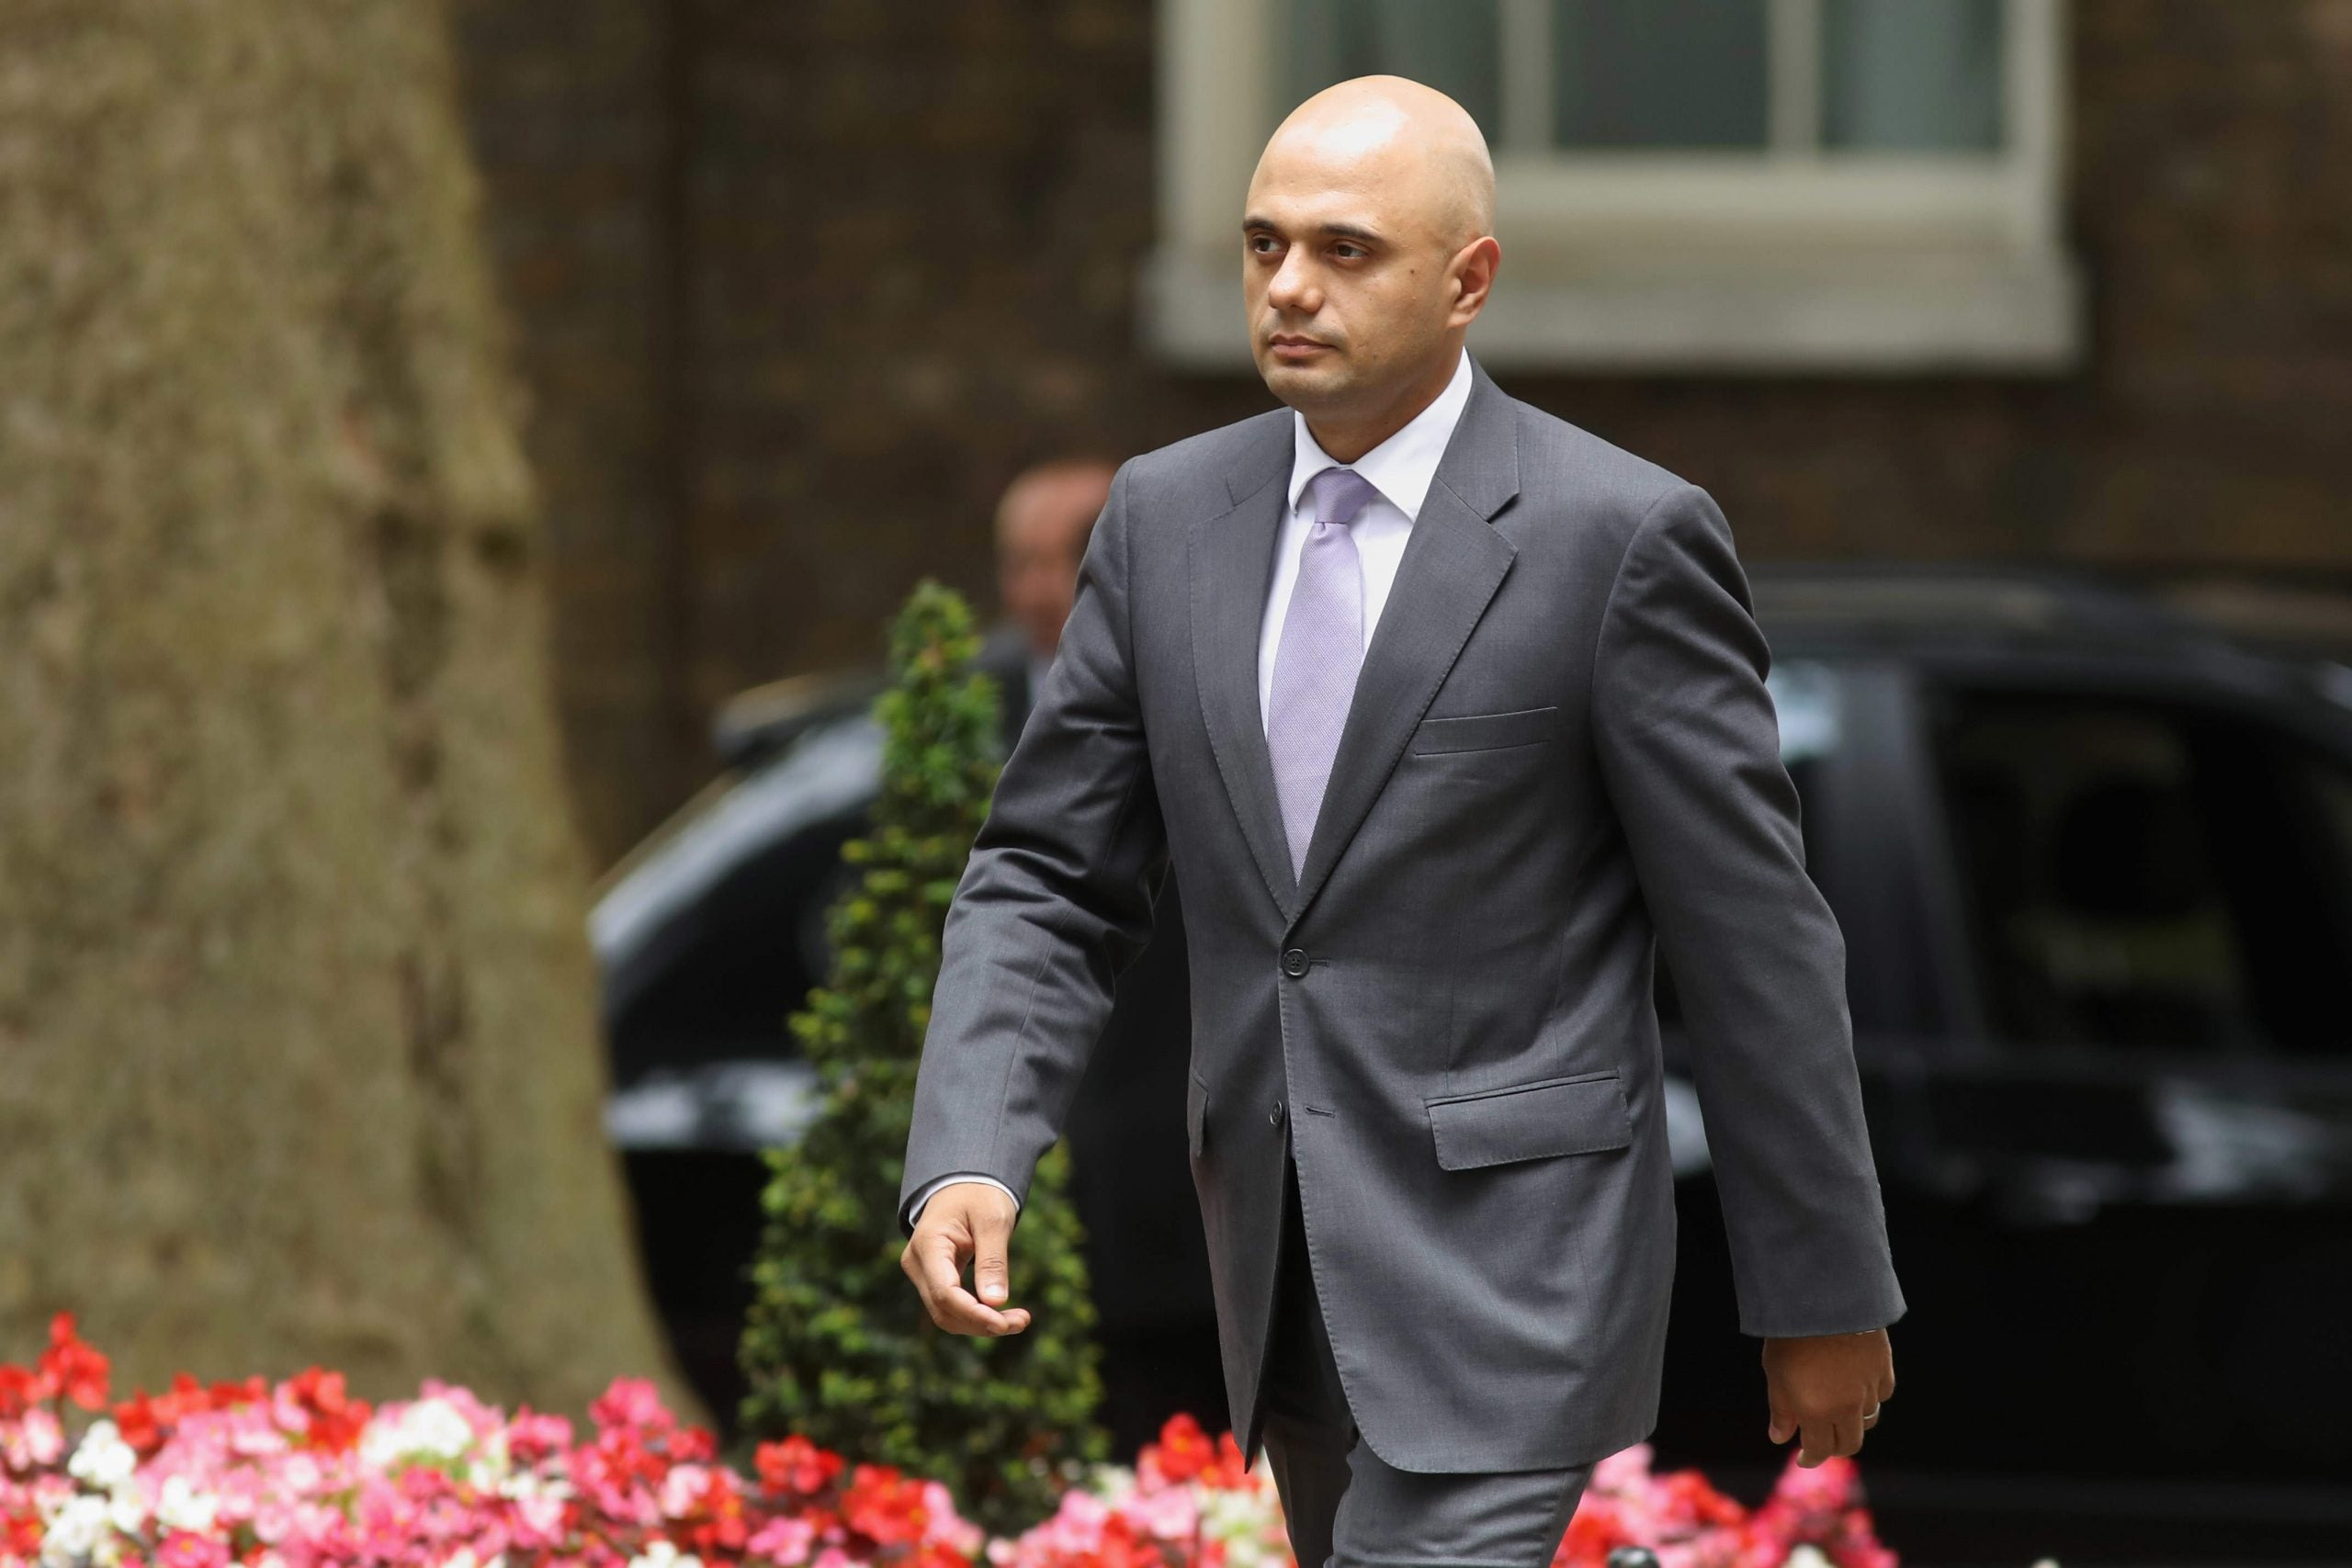 Sajid Javid replaces Amber Rudd as Home Secretary – will he continue Theresa May's legacy?